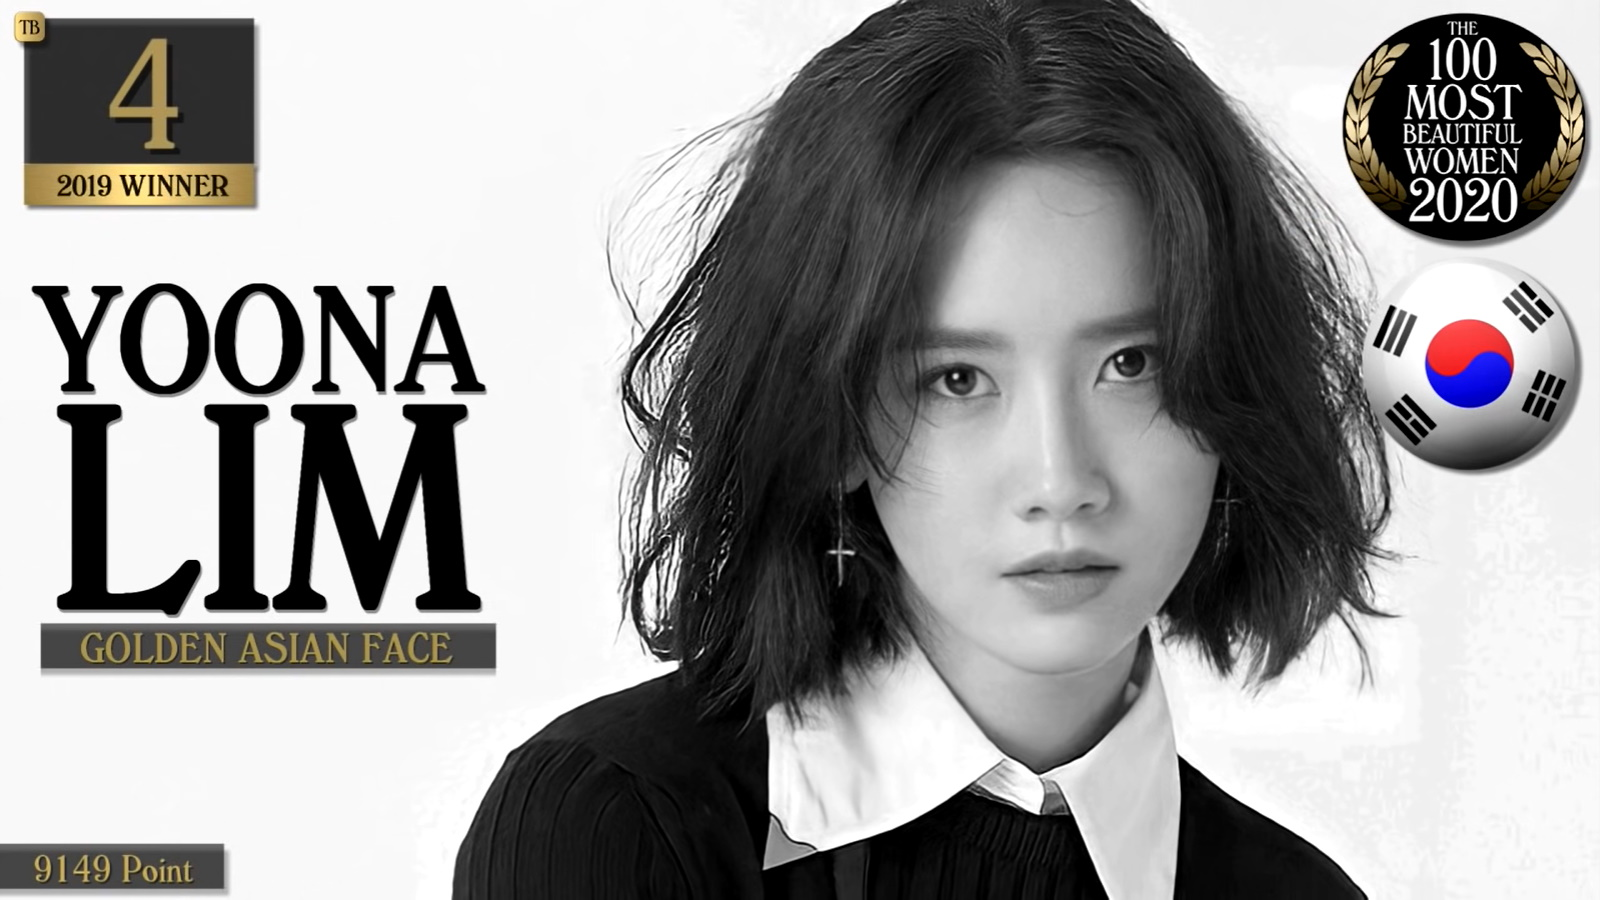 Lim Yoona - The 100 Most Beautiful Women Of 2020